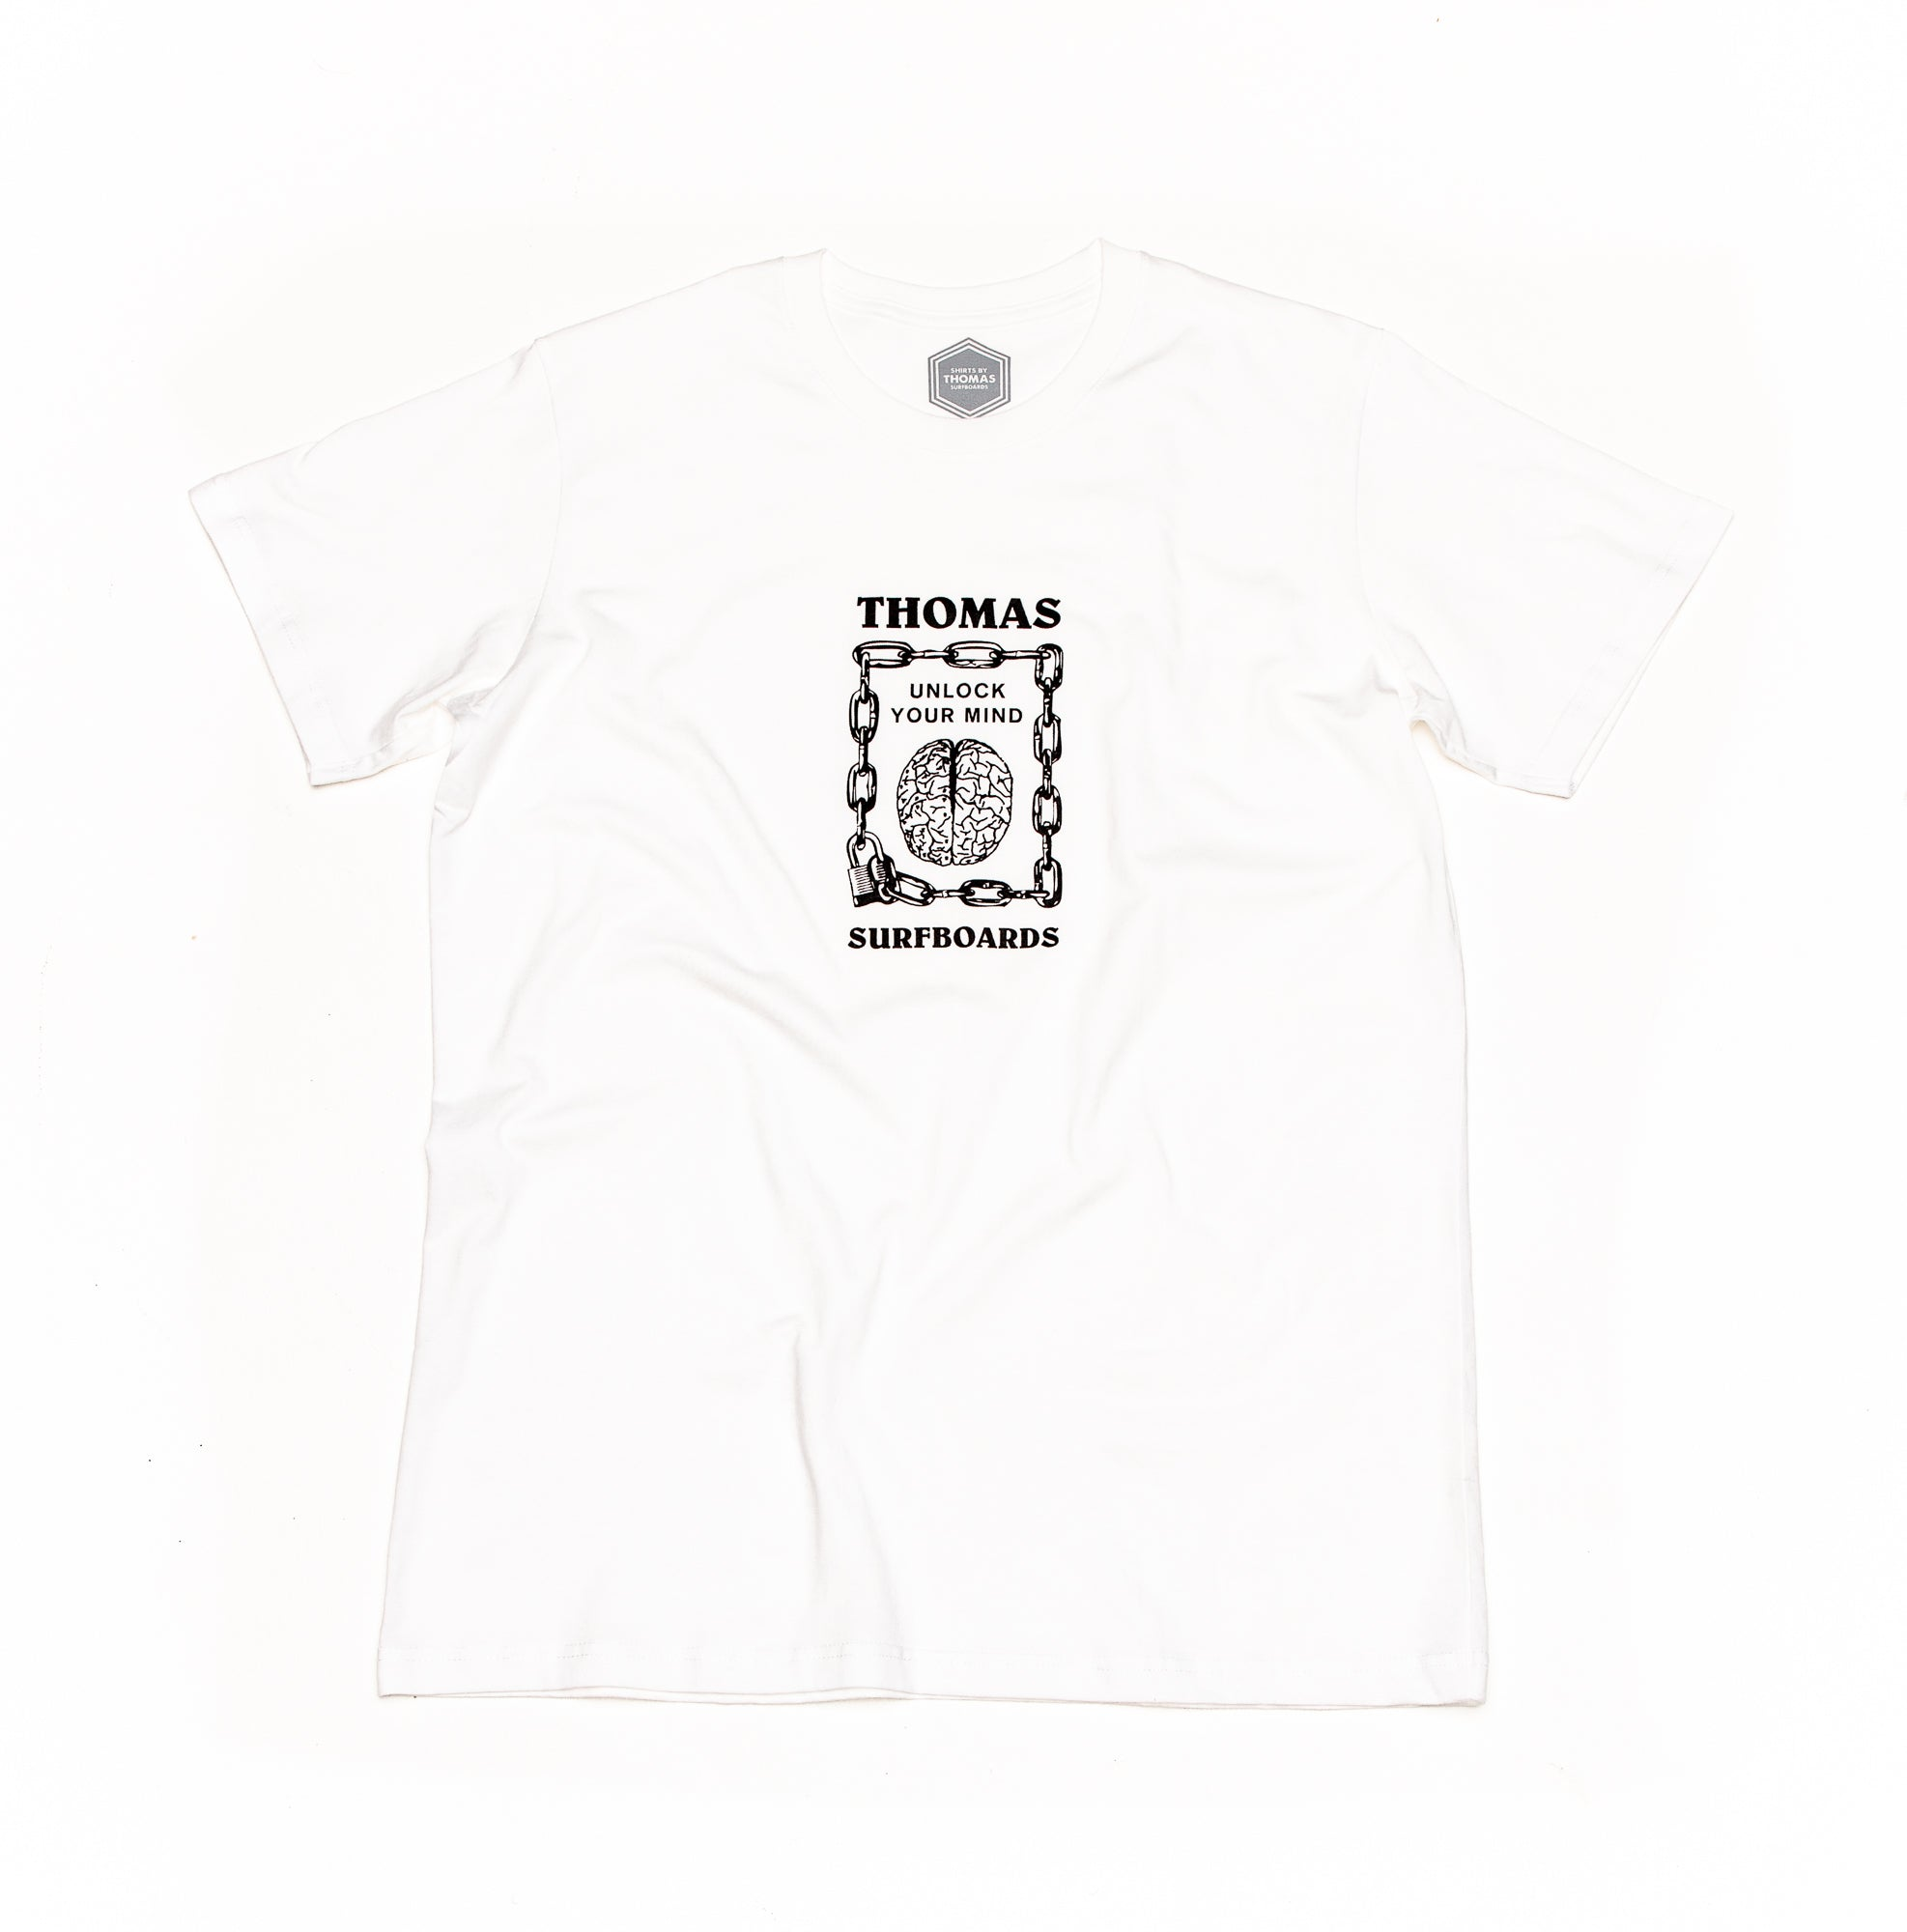 Thomas Unlock Your Mind Tee